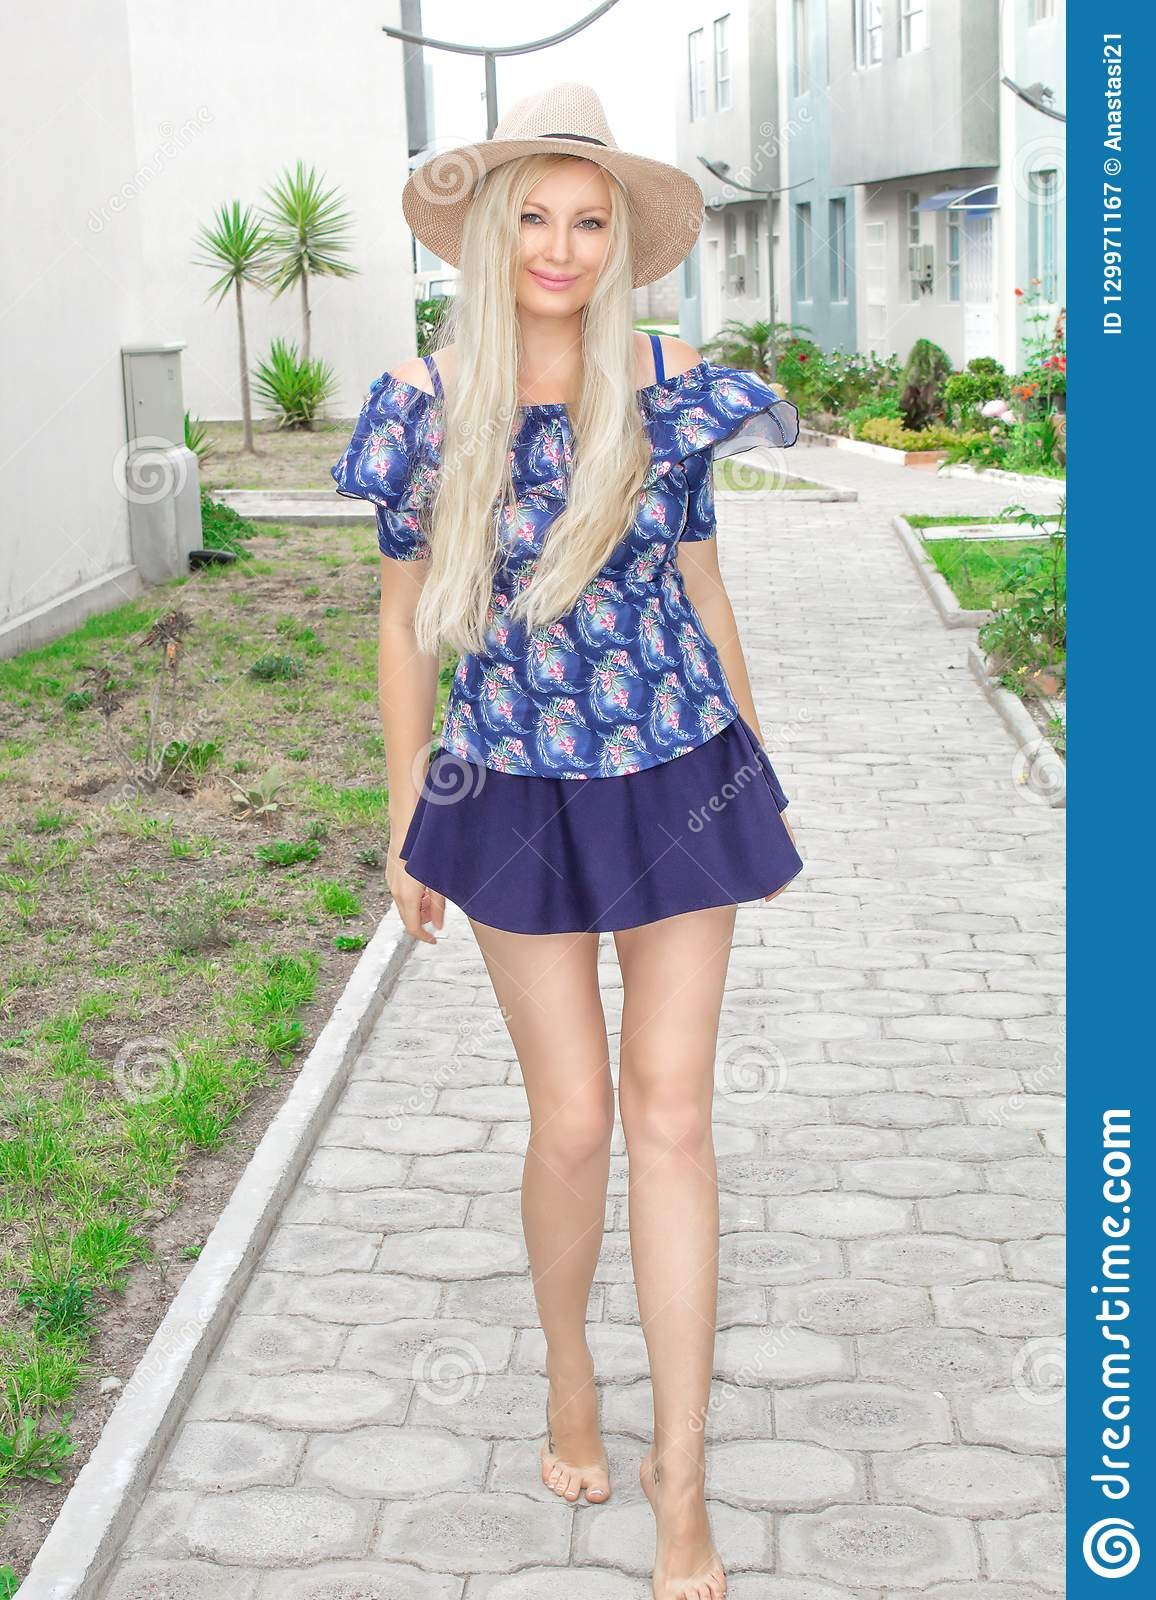 A beautiful young blond woman with long slim legs in a short skirt and hat is standing posing outdoors.